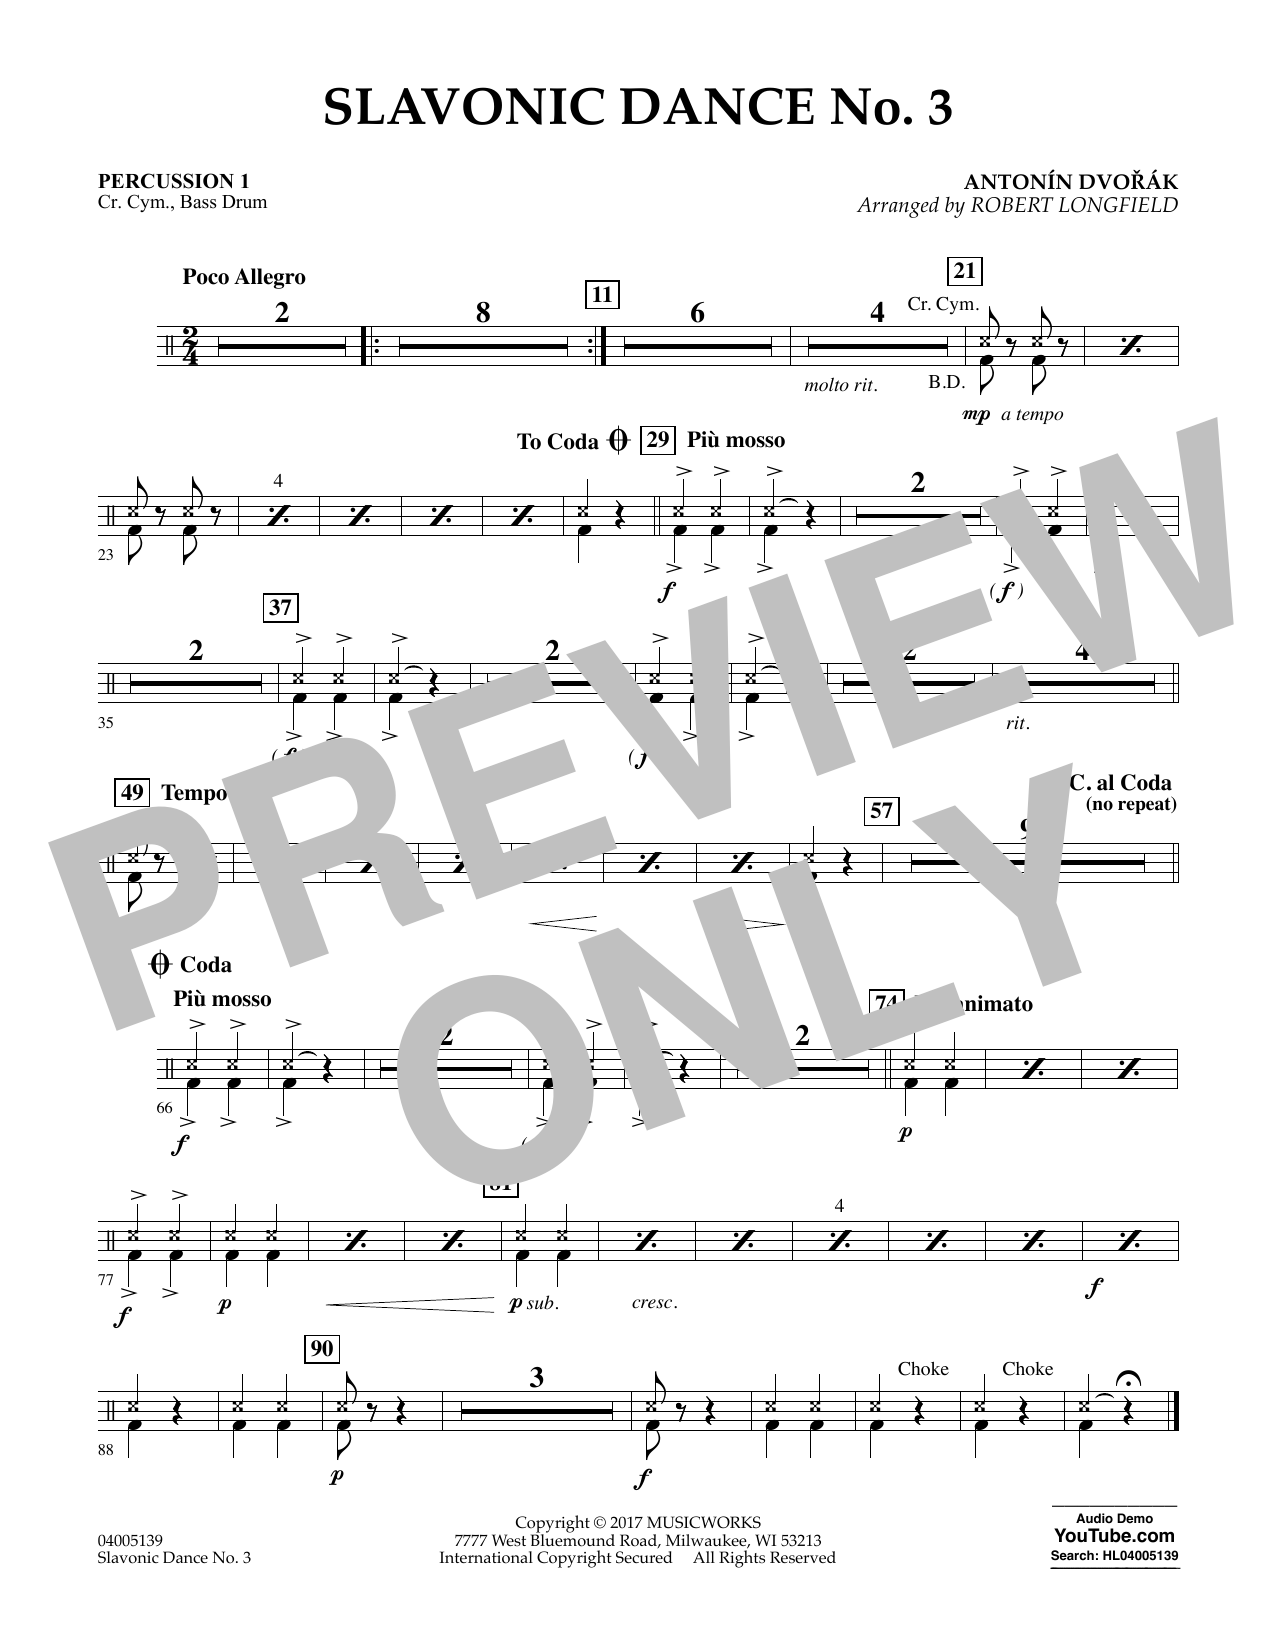 Robert Longfield Slavonic Dance No. 3 - Percussion 1 sheet music notes and chords. Download Printable PDF.